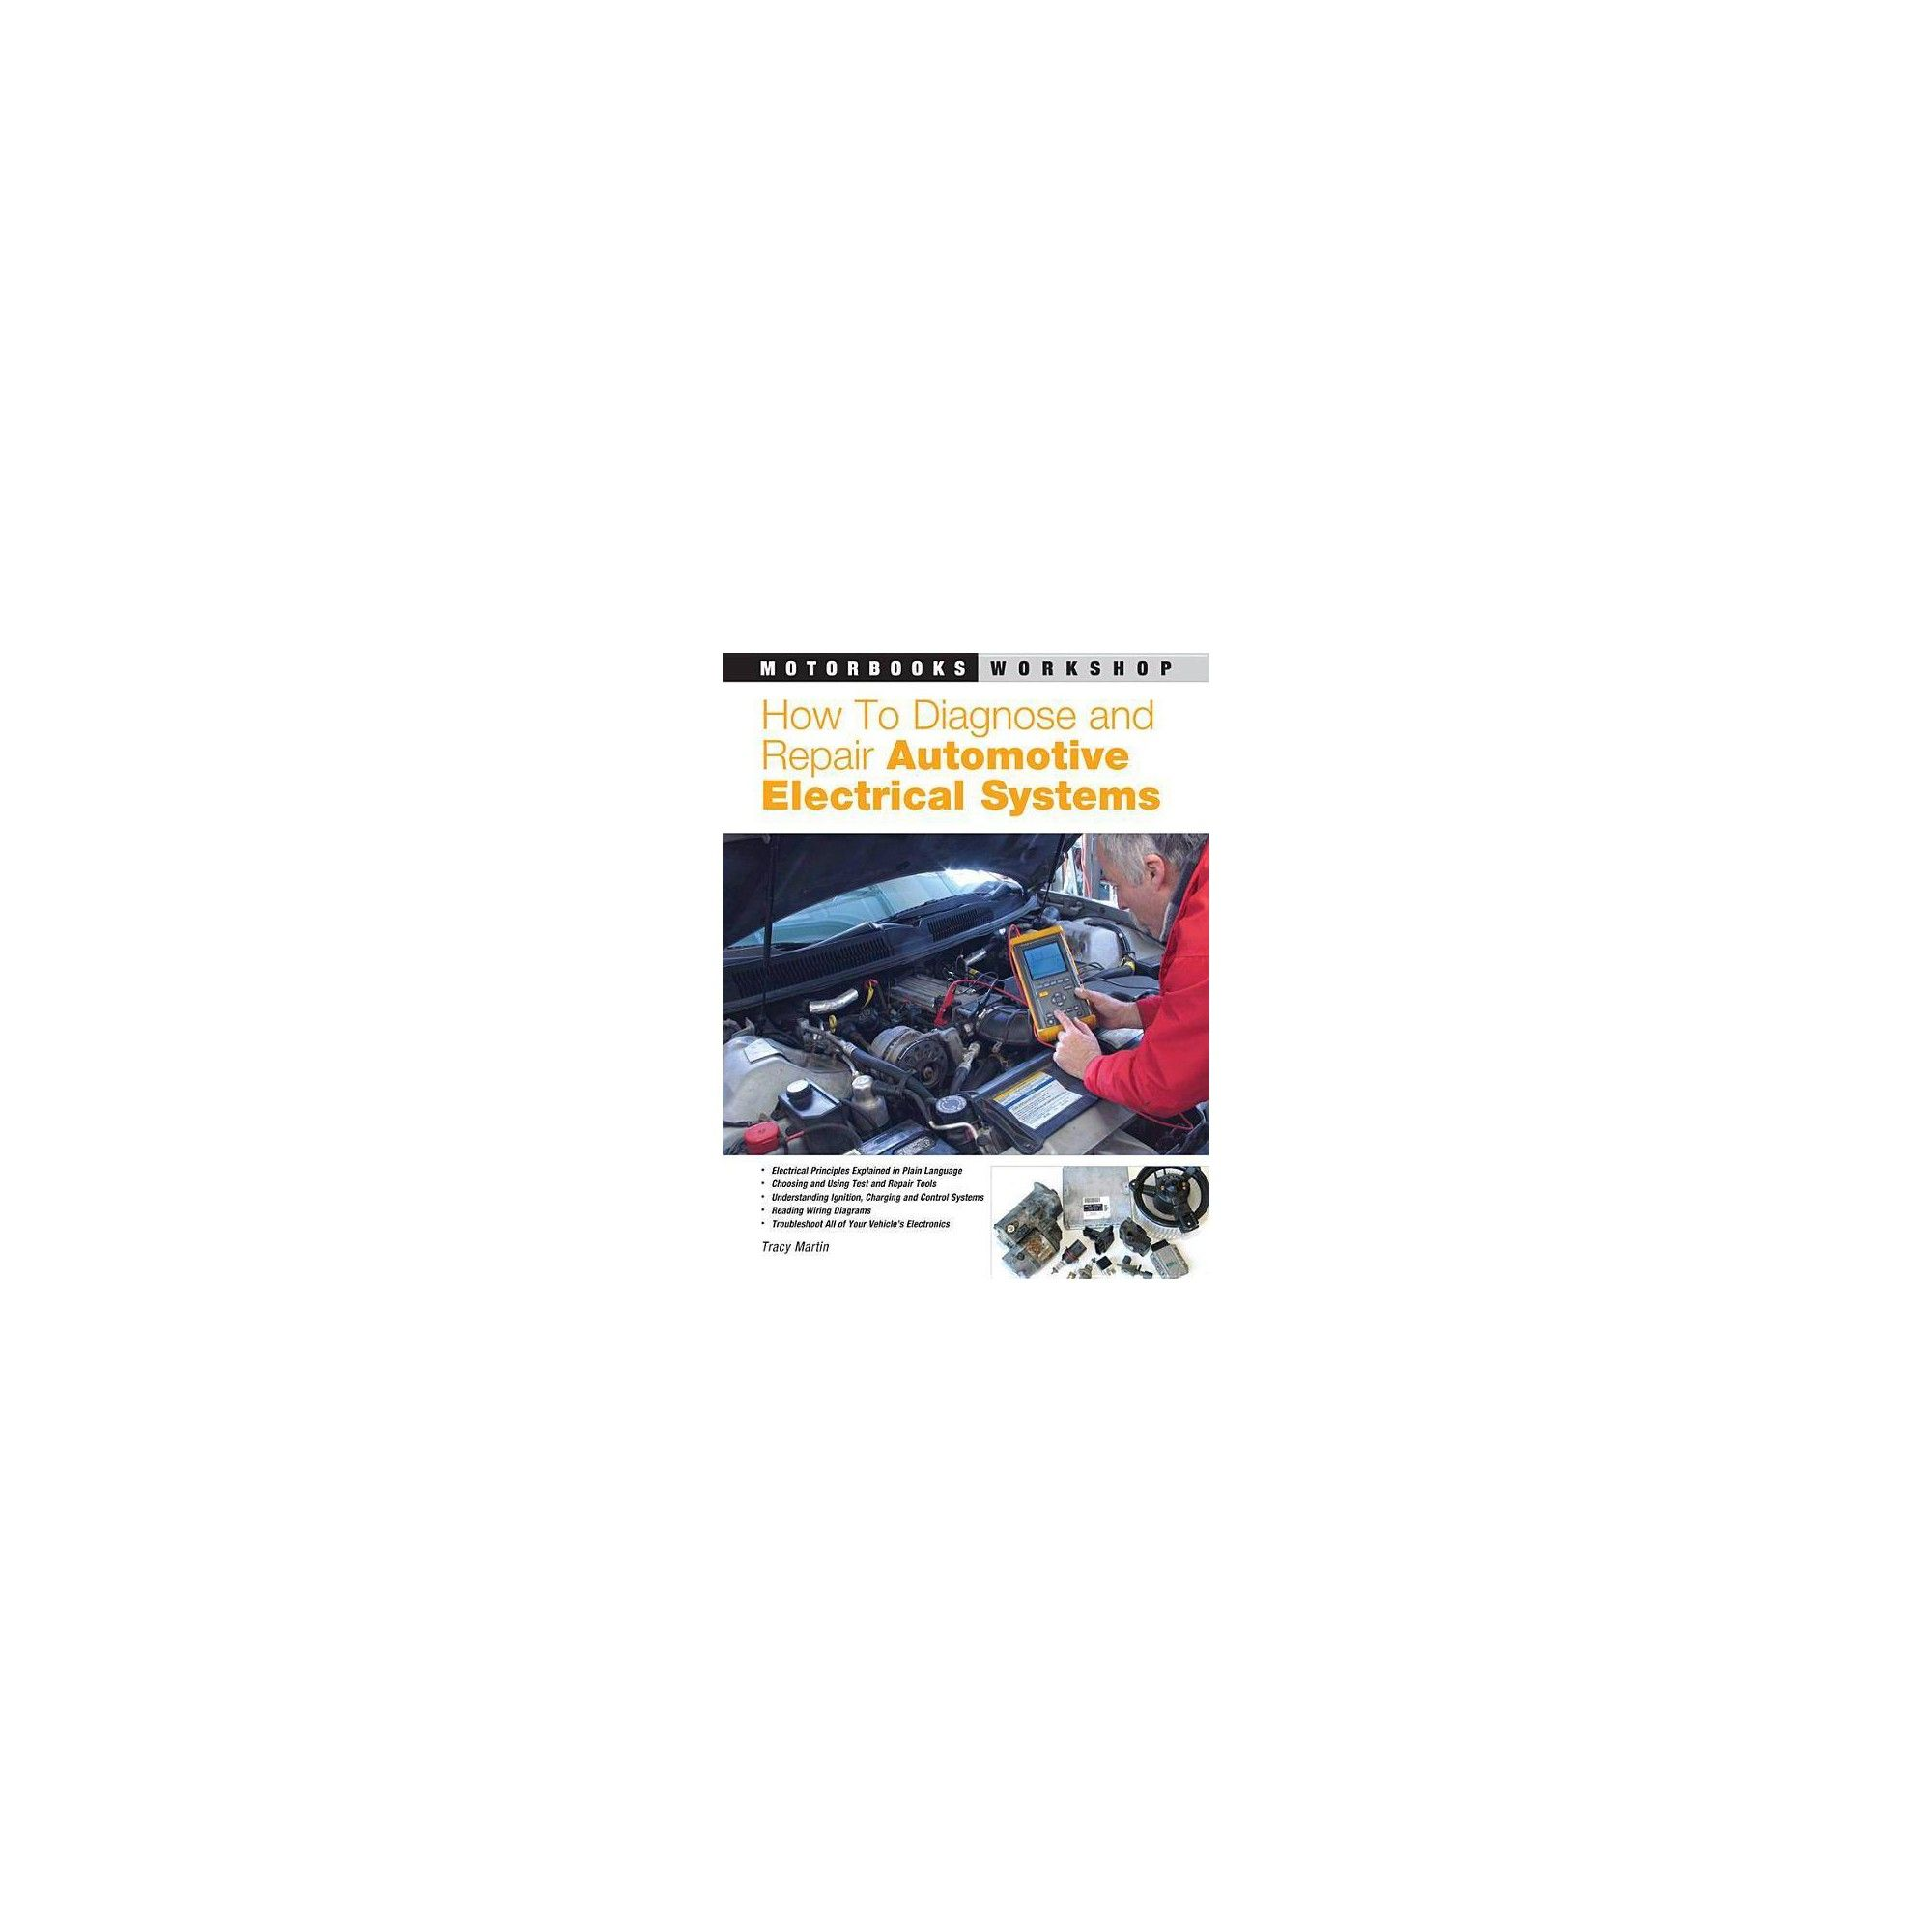 small resolution of how to diagnose and repair automotive electrical systems motorbooks workshop by tracy martin